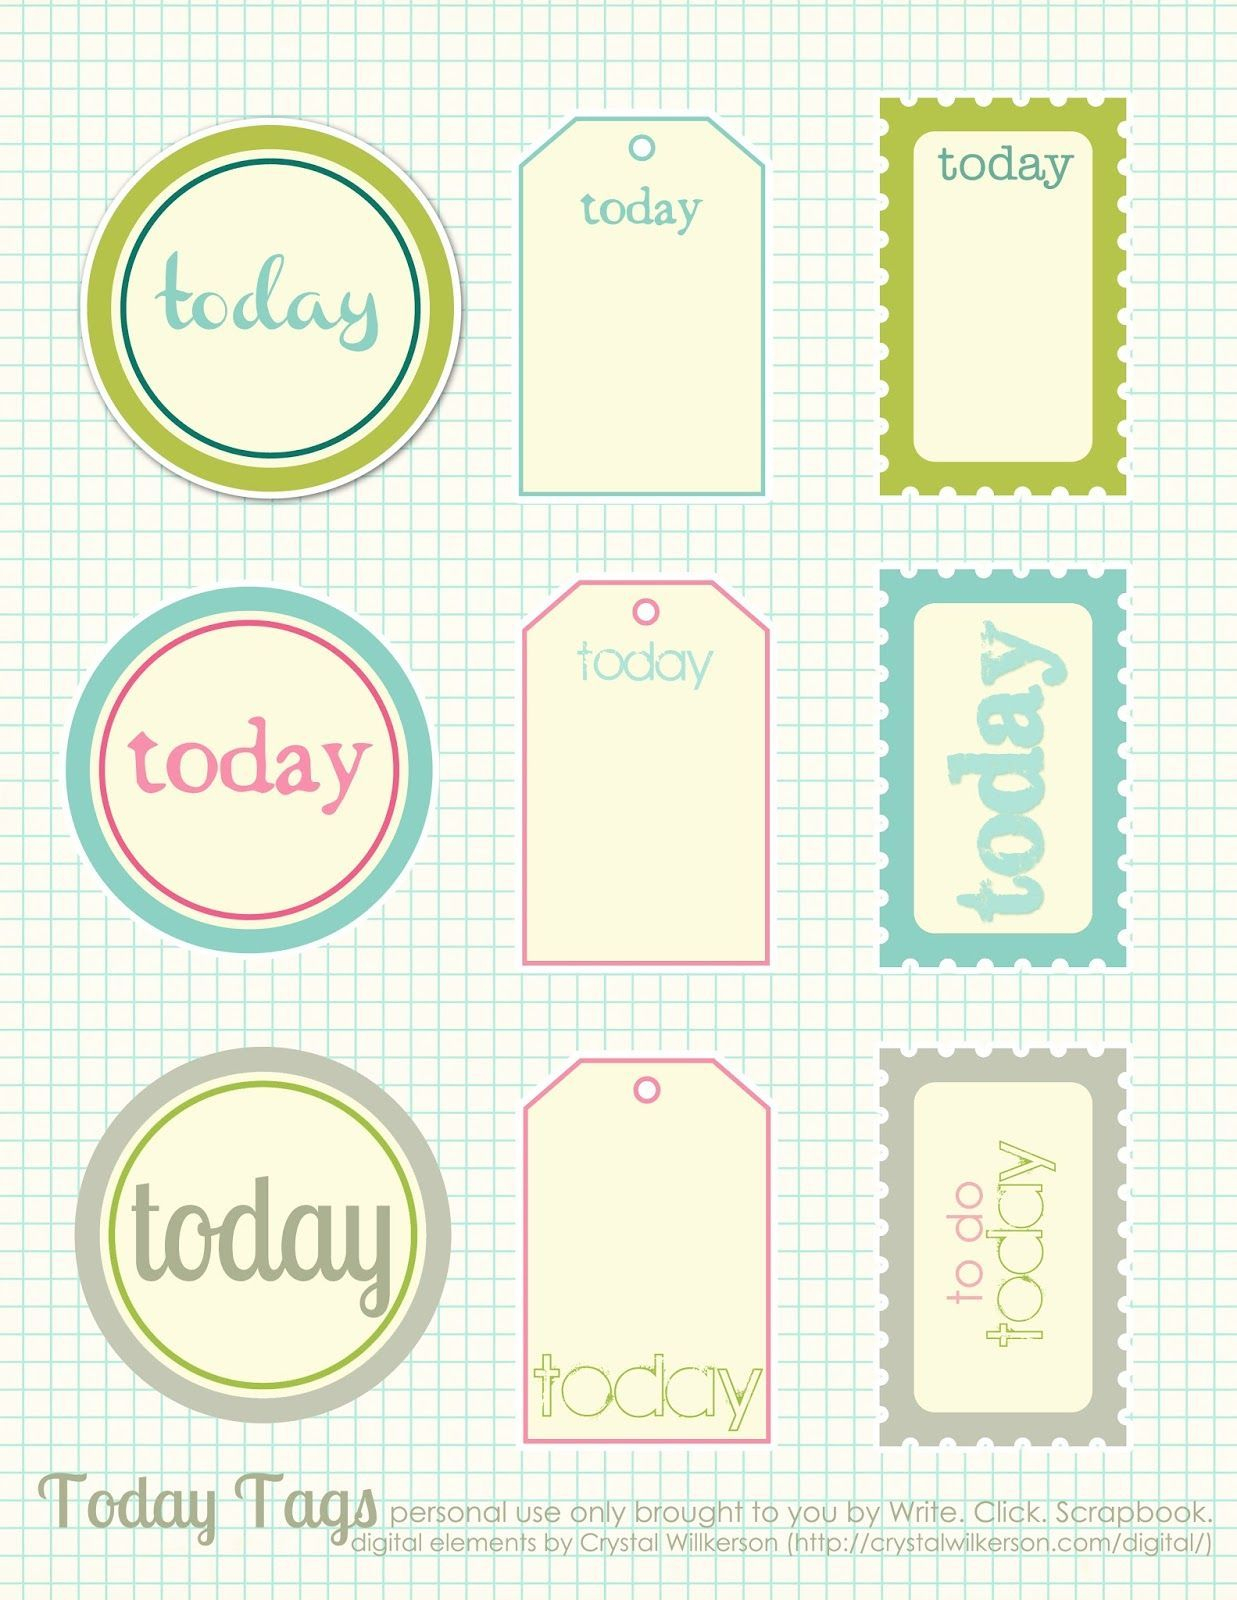 25 Awesome Photo Of Scrapbook Printables Free | Scrapbook Diy Ideas - Free Printable Scrapbook Pages